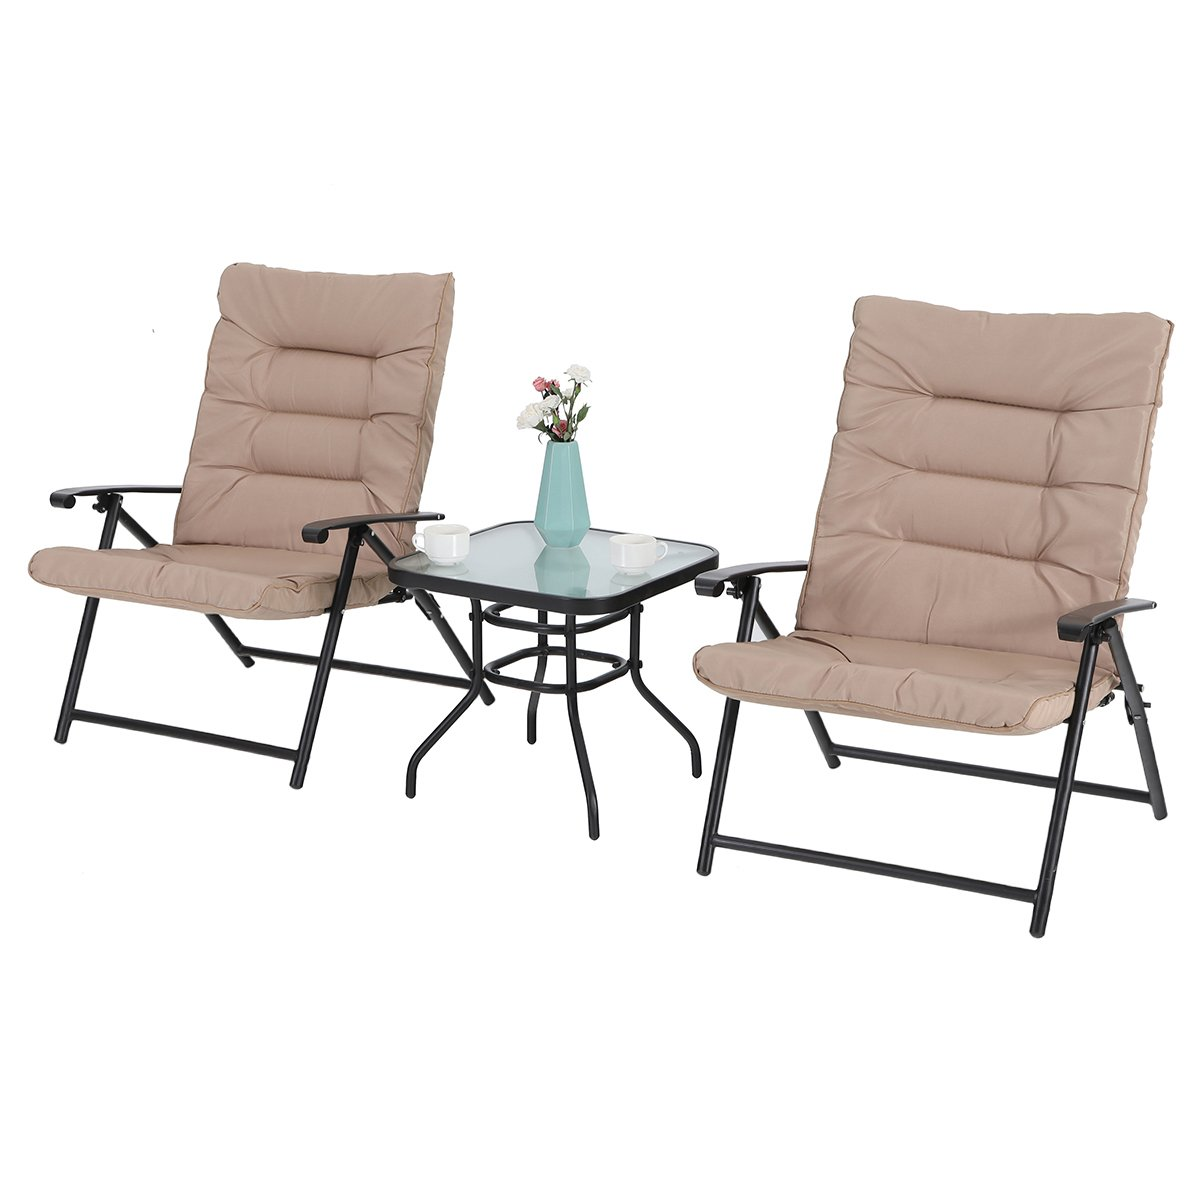 PHI VILLA Patio 3 PC Padded Folding Chair Set Adjustable Reclining 2 Position, Beige